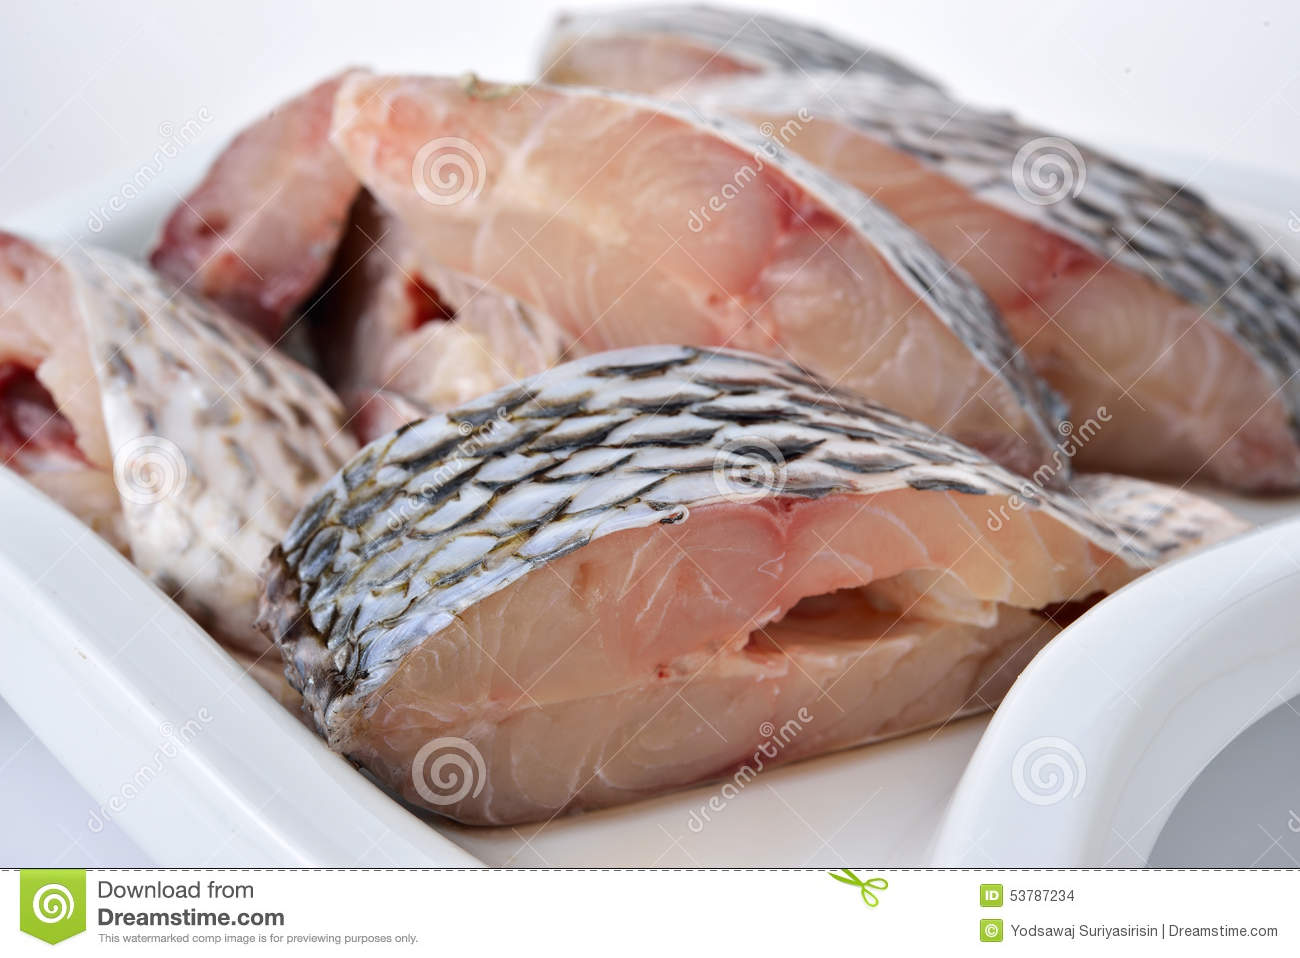 Portion cut of fresh tilapia fish stock photo image for What kind of fish is tilapia